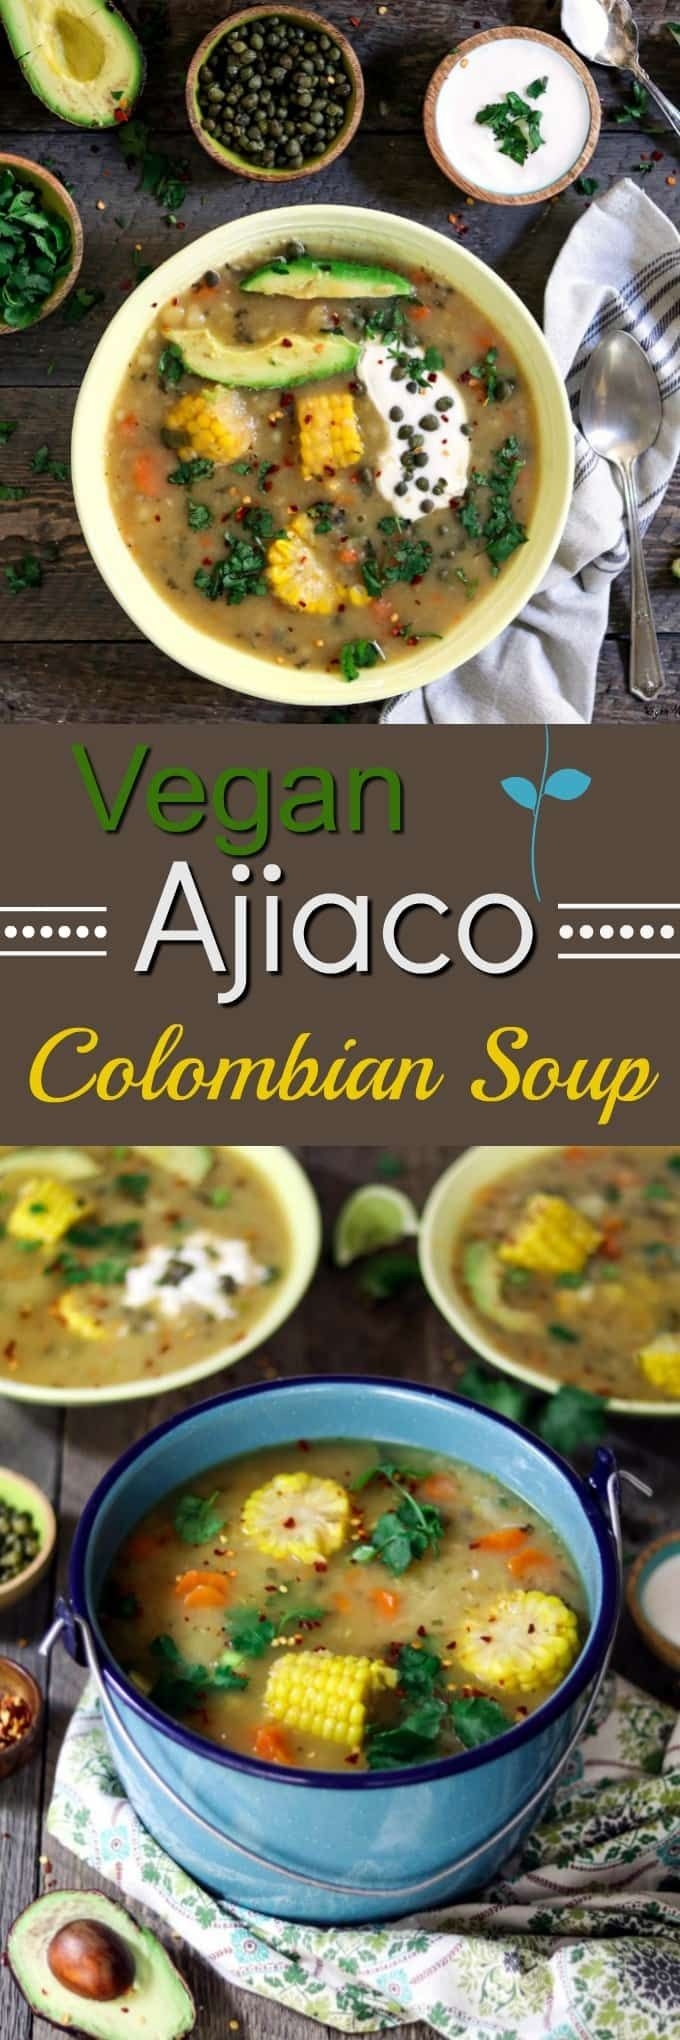 Ajiaco, a delicious vegan version of this Colombian Soup.